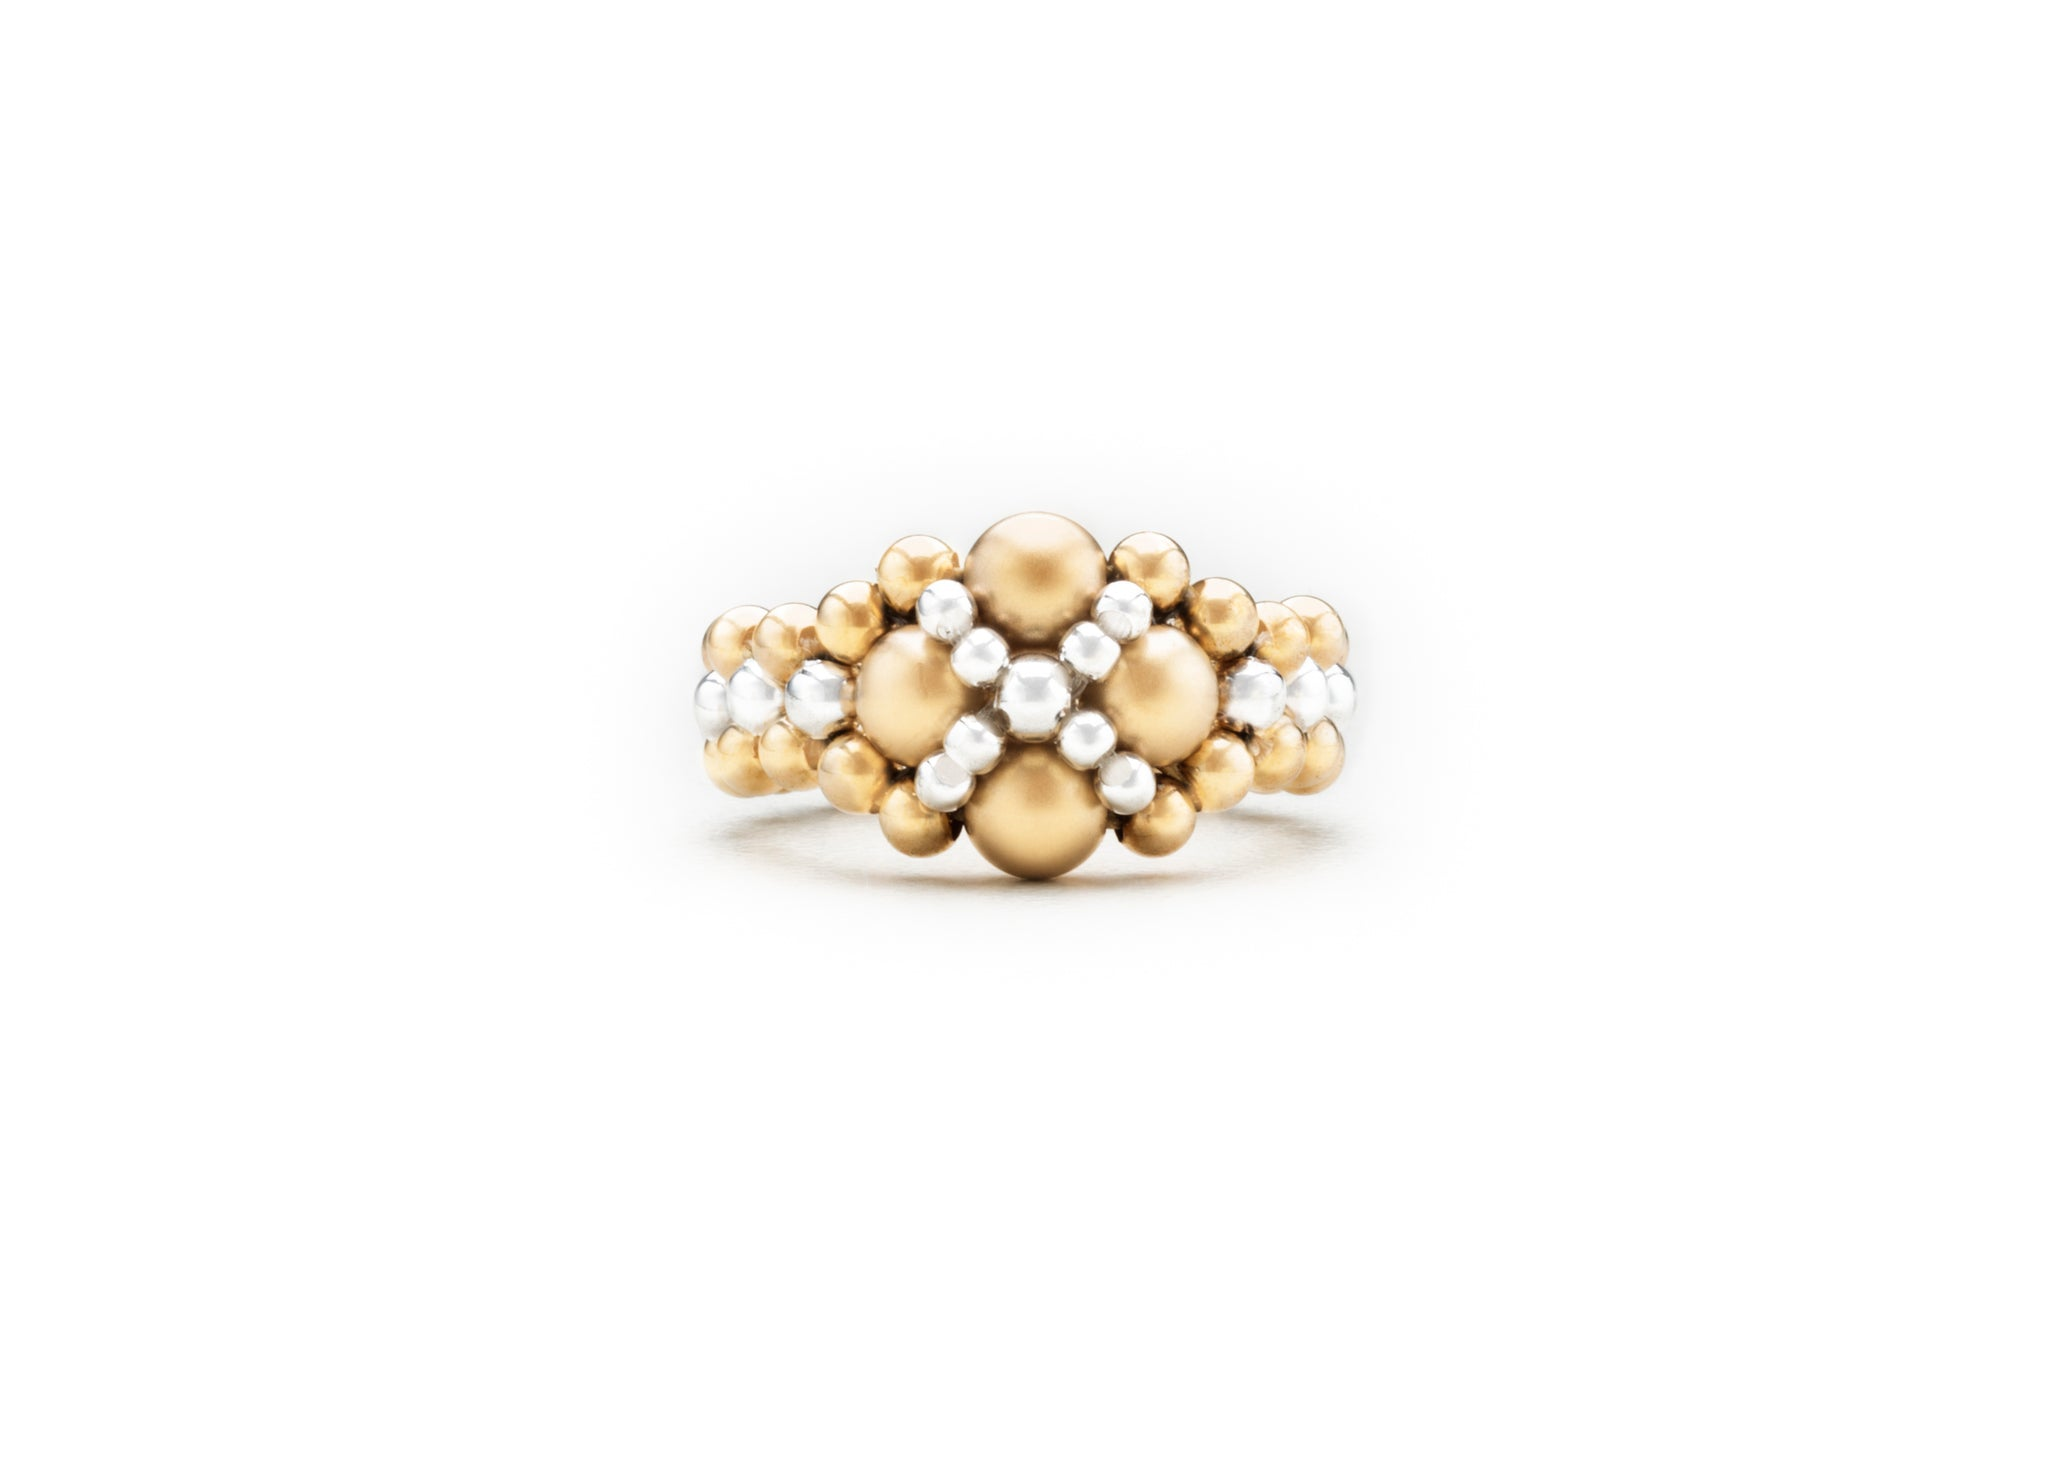 Gold and Silver Floret Ring